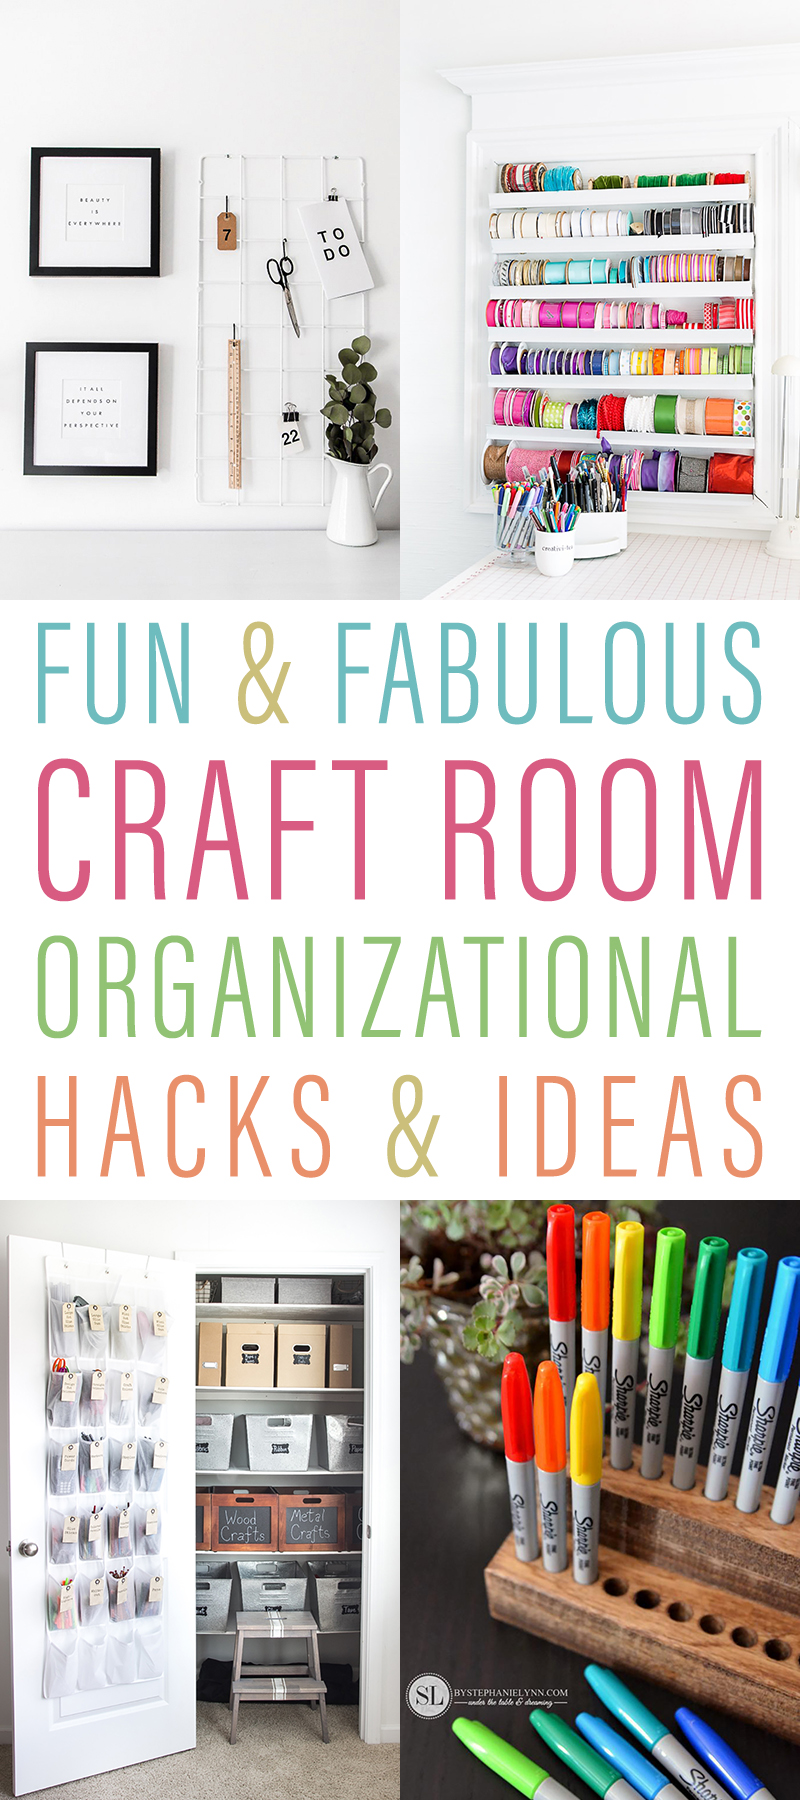 Fun and Fabulous Craft Room Organizational Hacks & Ideas so you can get one of your favorite rooms totally organized so you can do your projects in a snap!